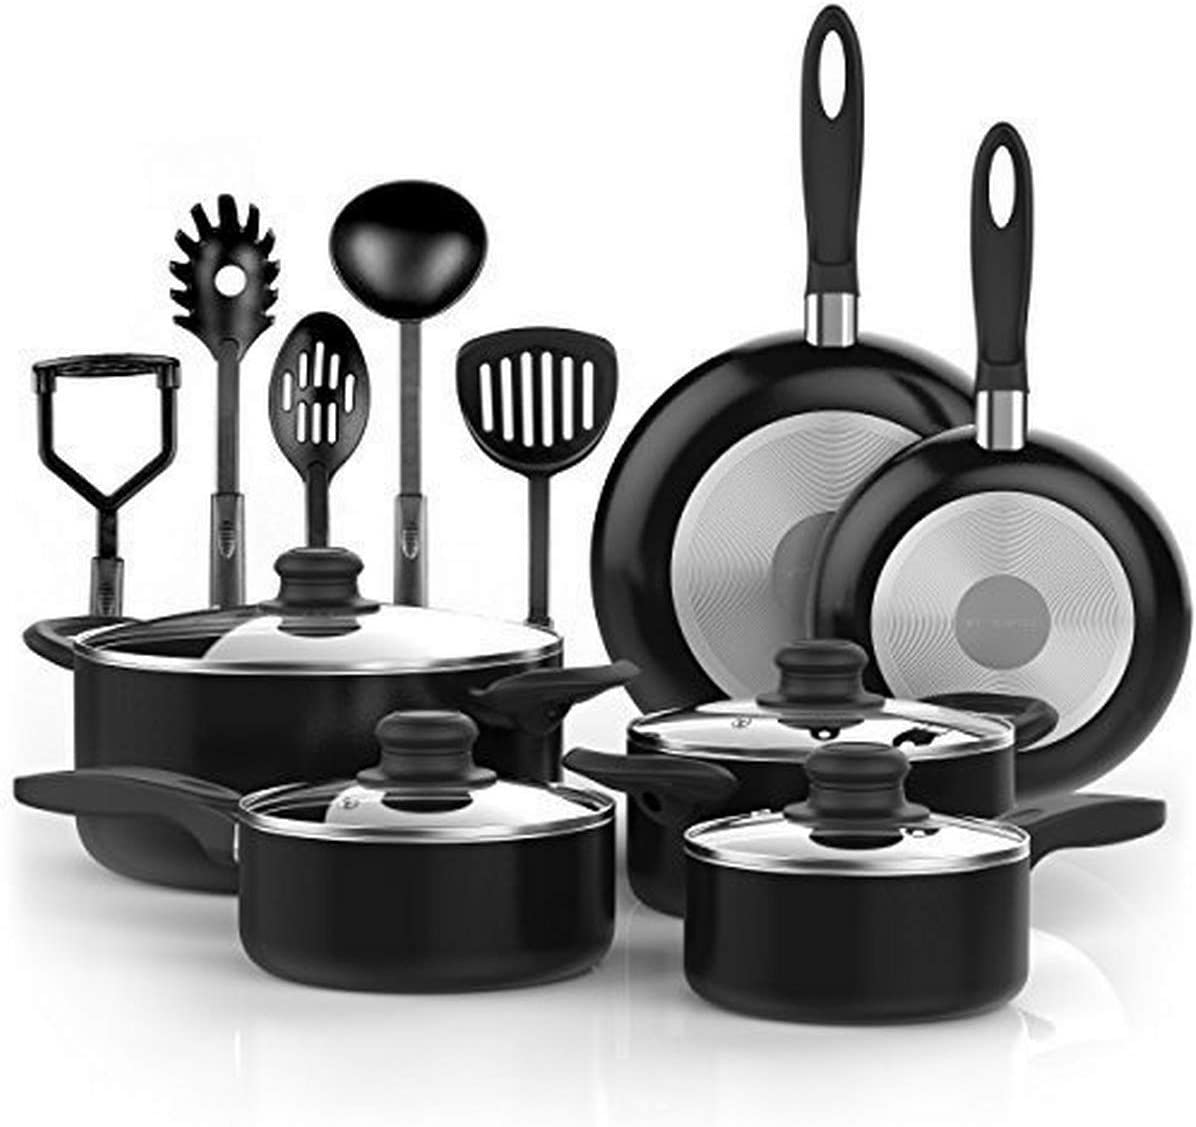 Amazon Com Vremi 15 Piece Nonstick Cookware Set Durable Aluminum Pots And Pans With Cooking Utensils Oven Safe Multi Quart Enameled Saucepans Dutch Ovens And Fry Pans With Glass Lid